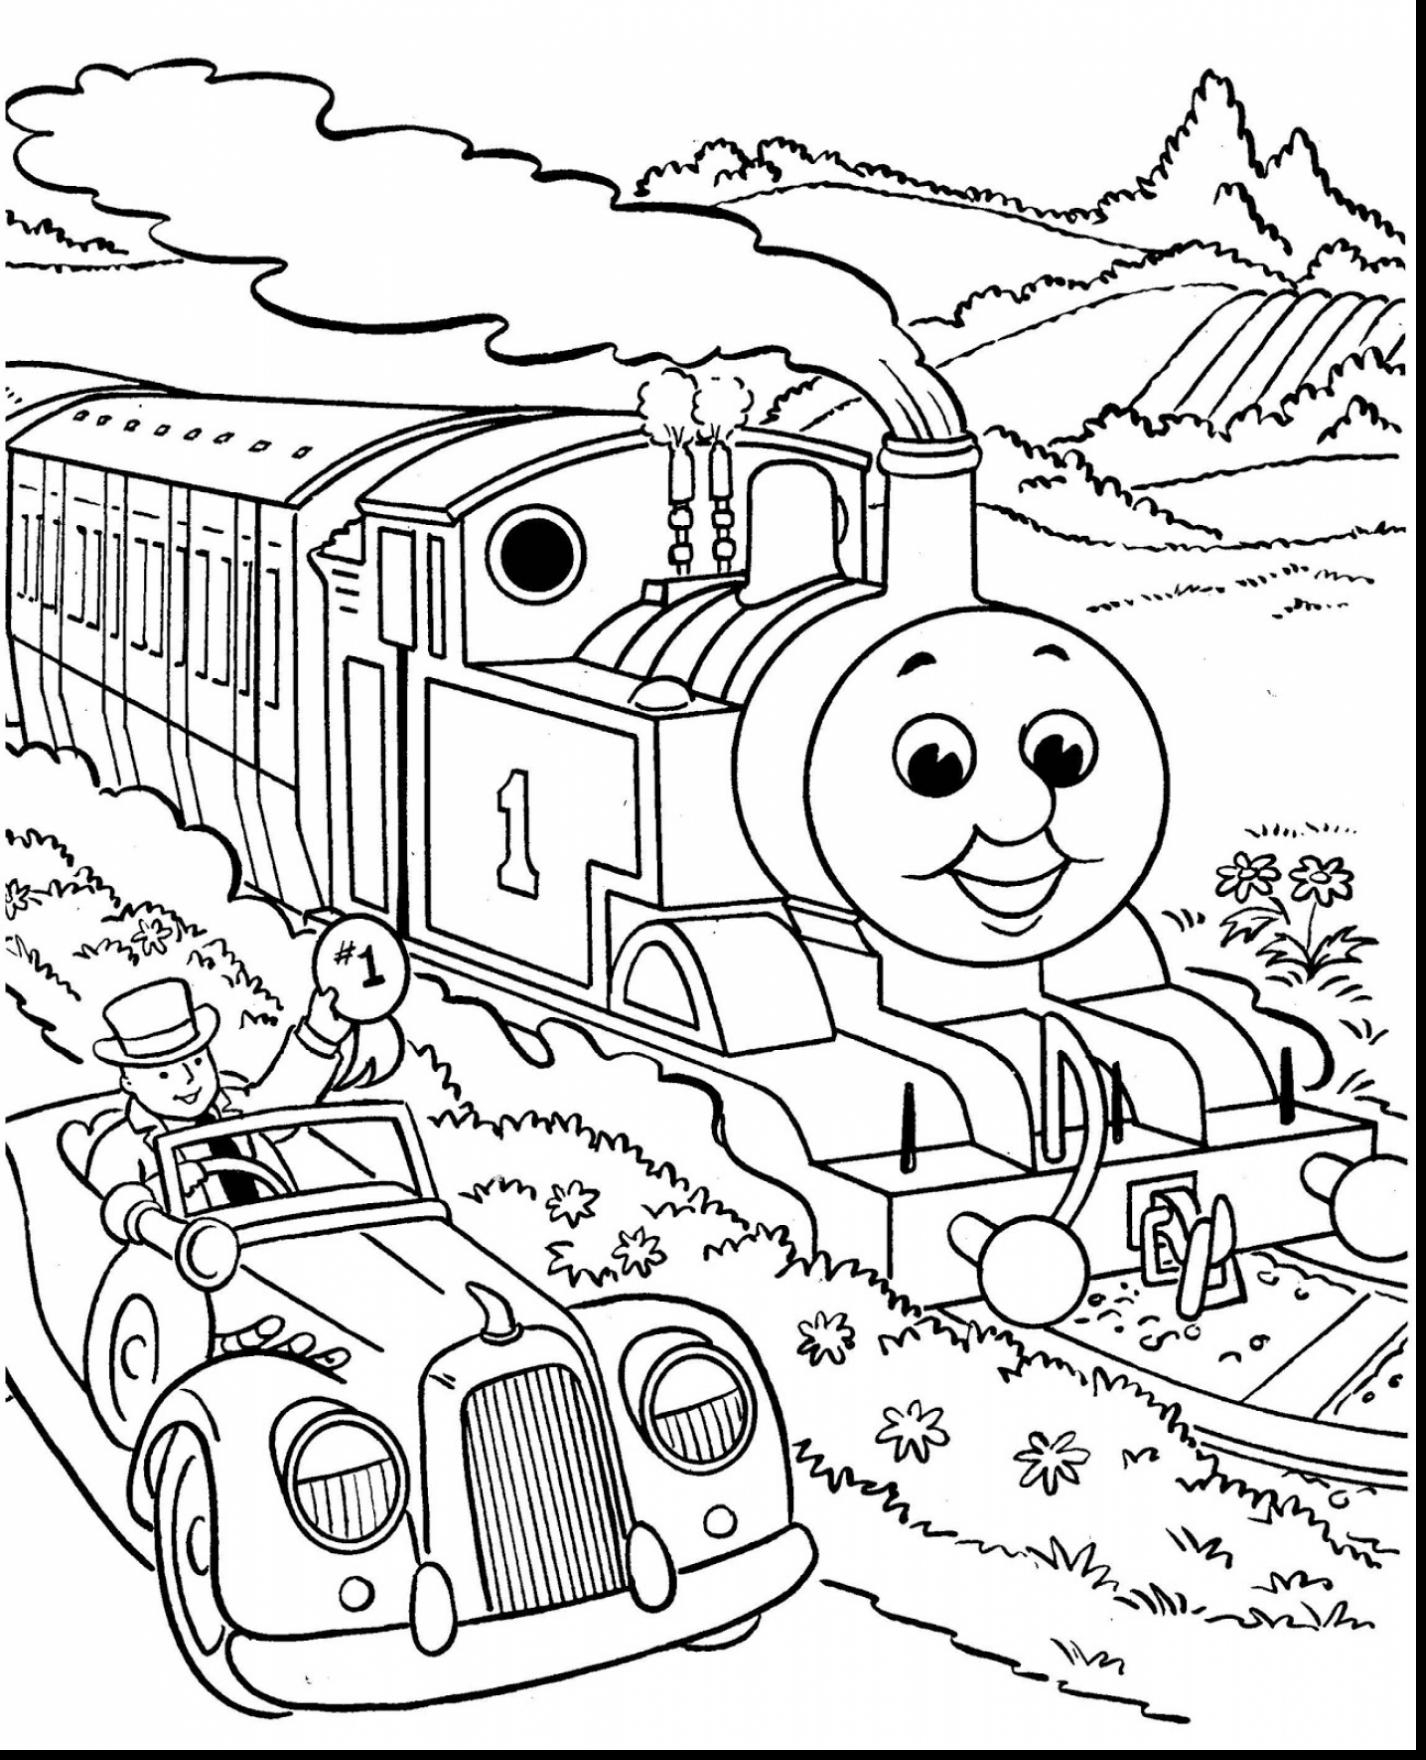 1426x1760 New Thomas And Friends Coloring Pages Collection Printable